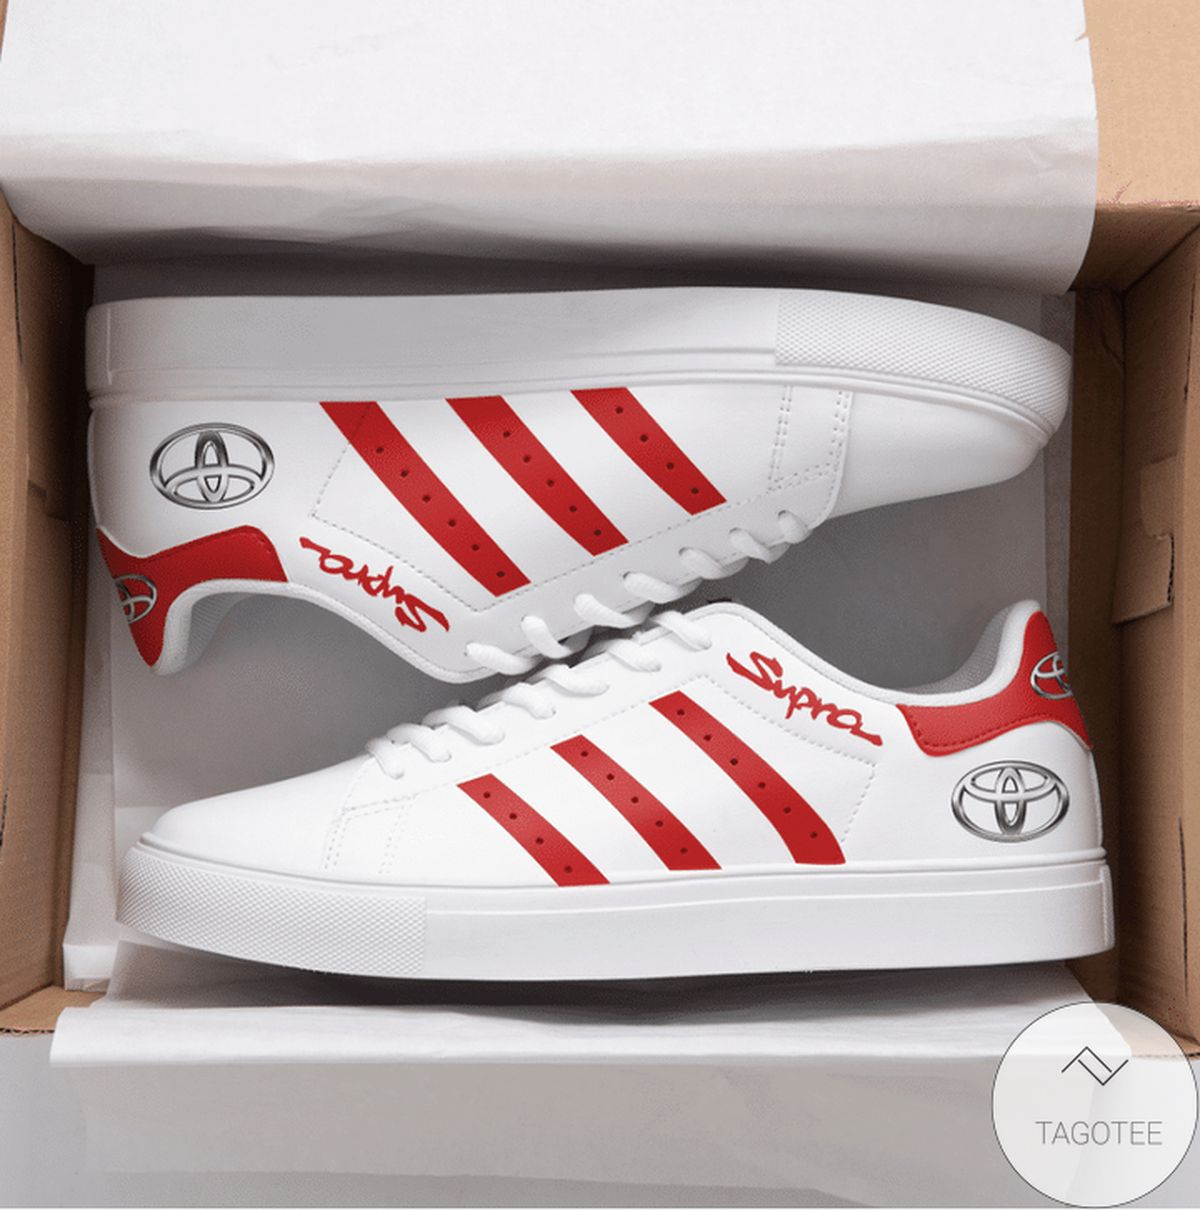 Discount Supra Red Stan Smith Shoes